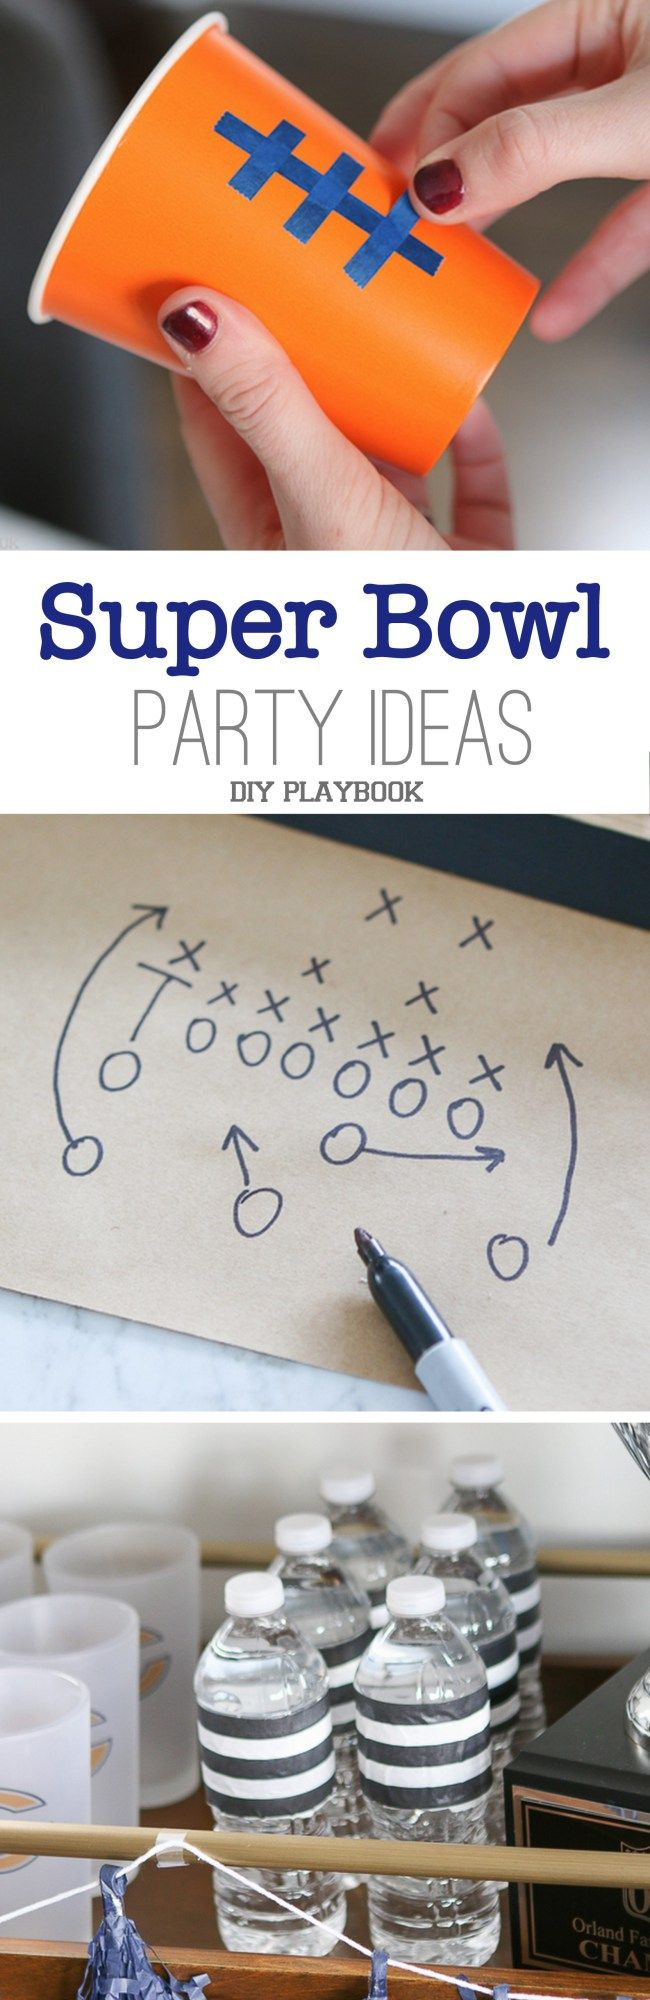 Are you hosting a Super Bowl party? Here are some easy DIY ideas to make the most of the big game. Check out these simple crafts to add personal touches to your football party.